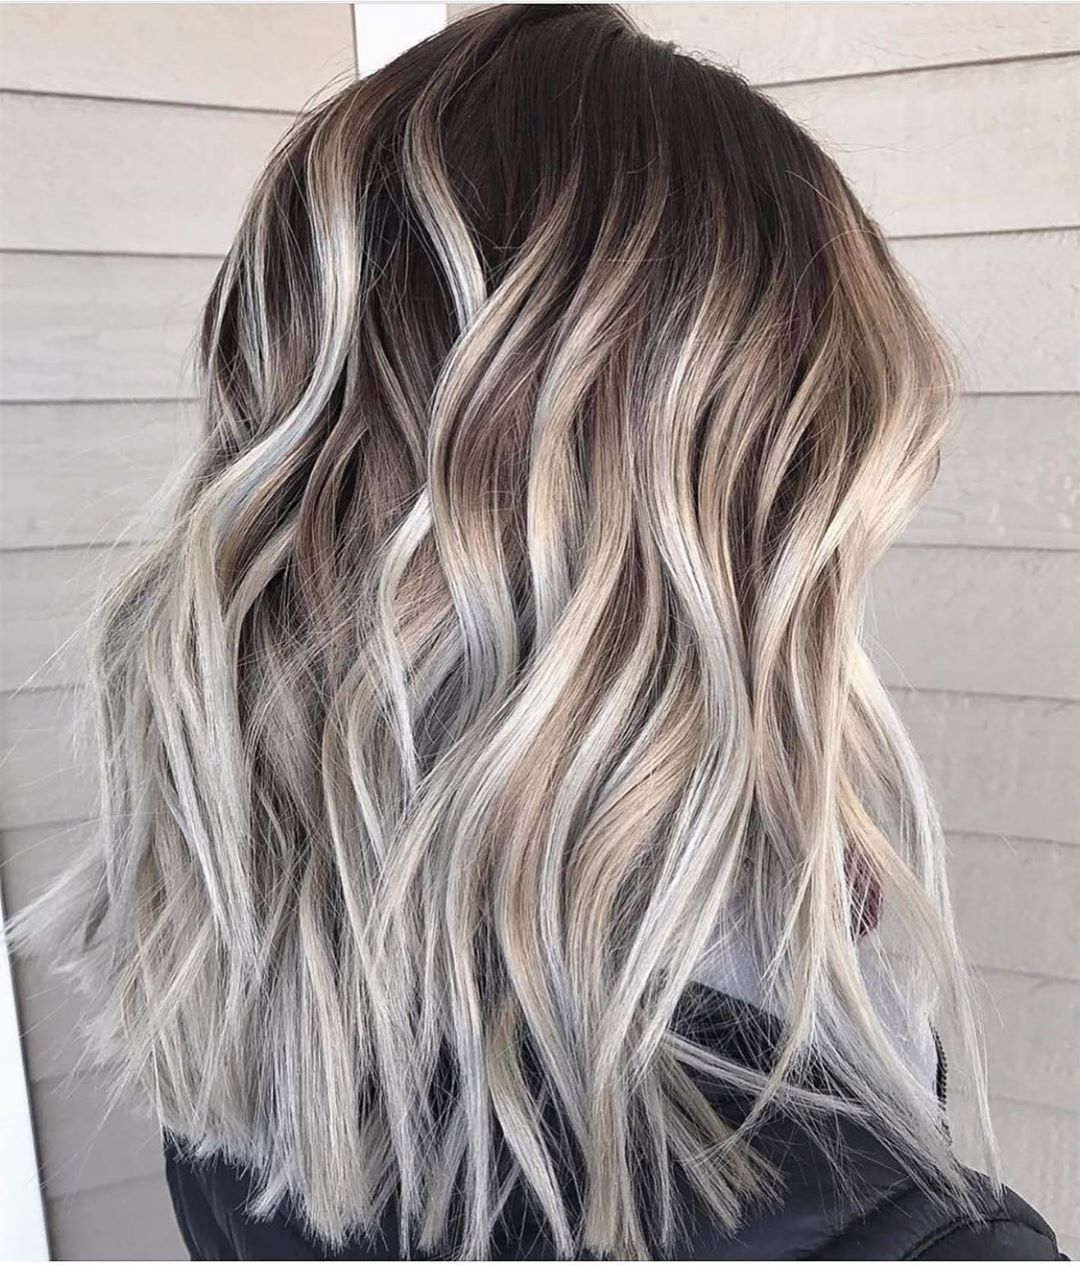 Pin By Jessica Hahn On I Love Hair In 2020 Ash Blonde Balayage Medium Blonde Hair Color Brown Ombre Hair